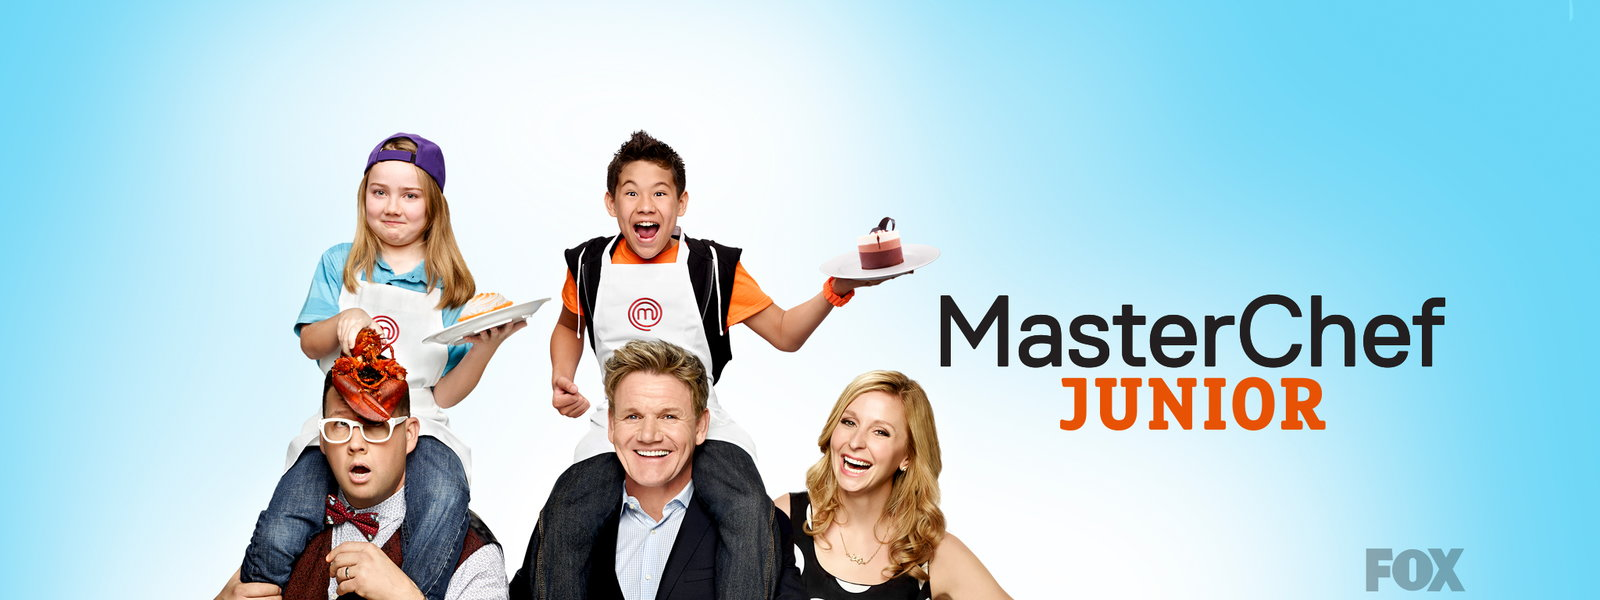 masterchef junior, gordon ramsay, fox, entertainment, celebrity cheds